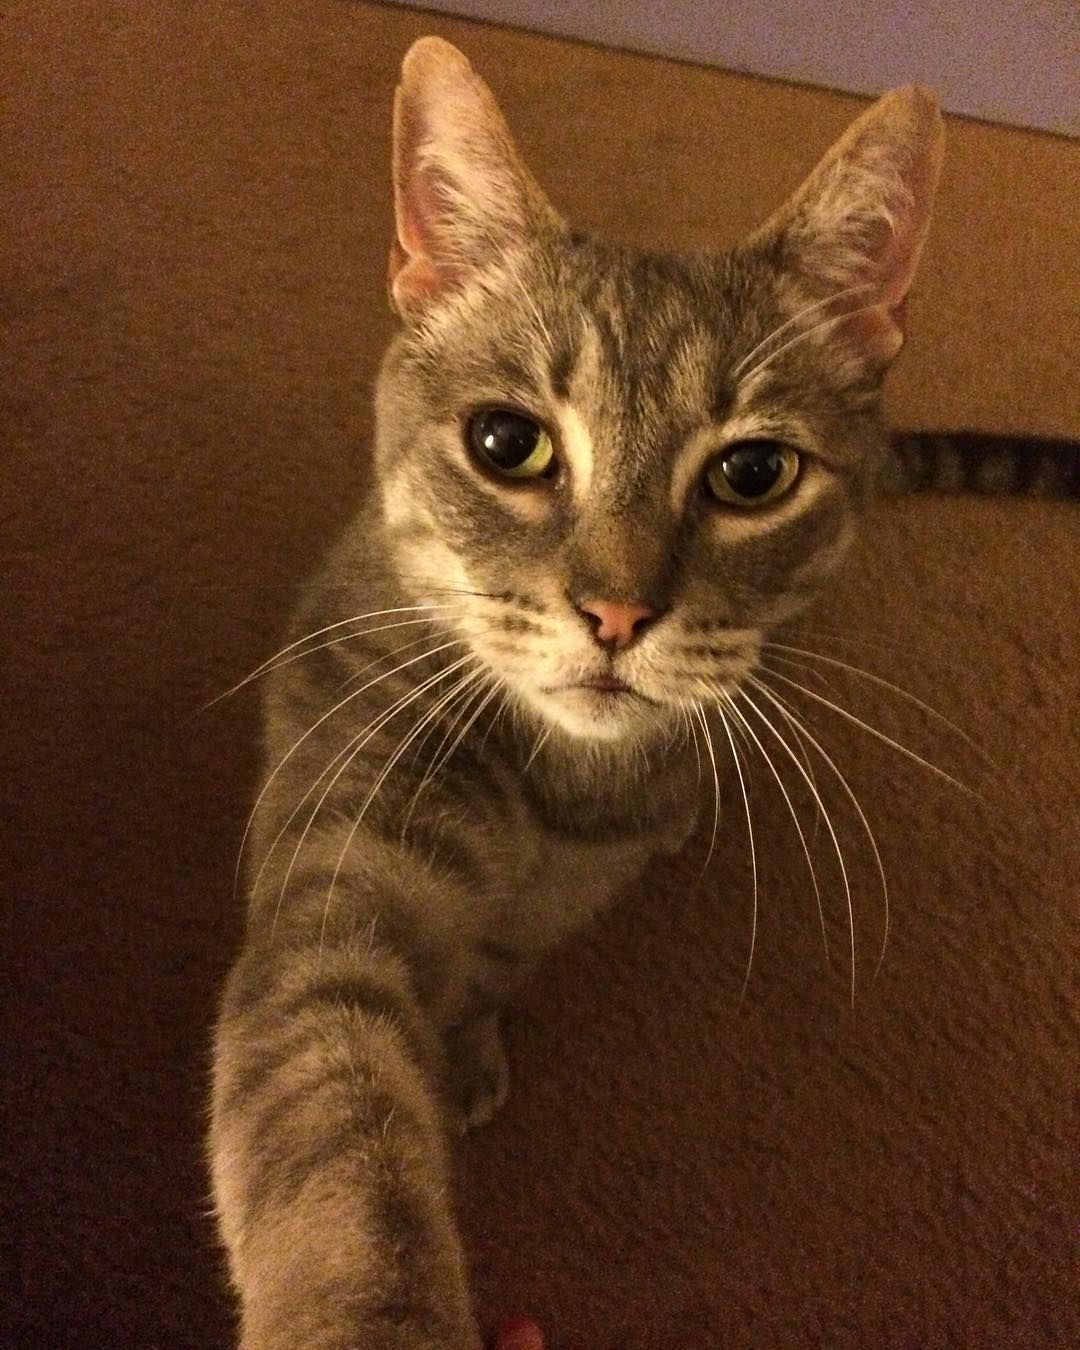 My Sweet Mr Herbie Give Me More Pets He Says Cat Mycat Tabbycat Meow Prettykitty Pretty Cats Cats Tabby Cat